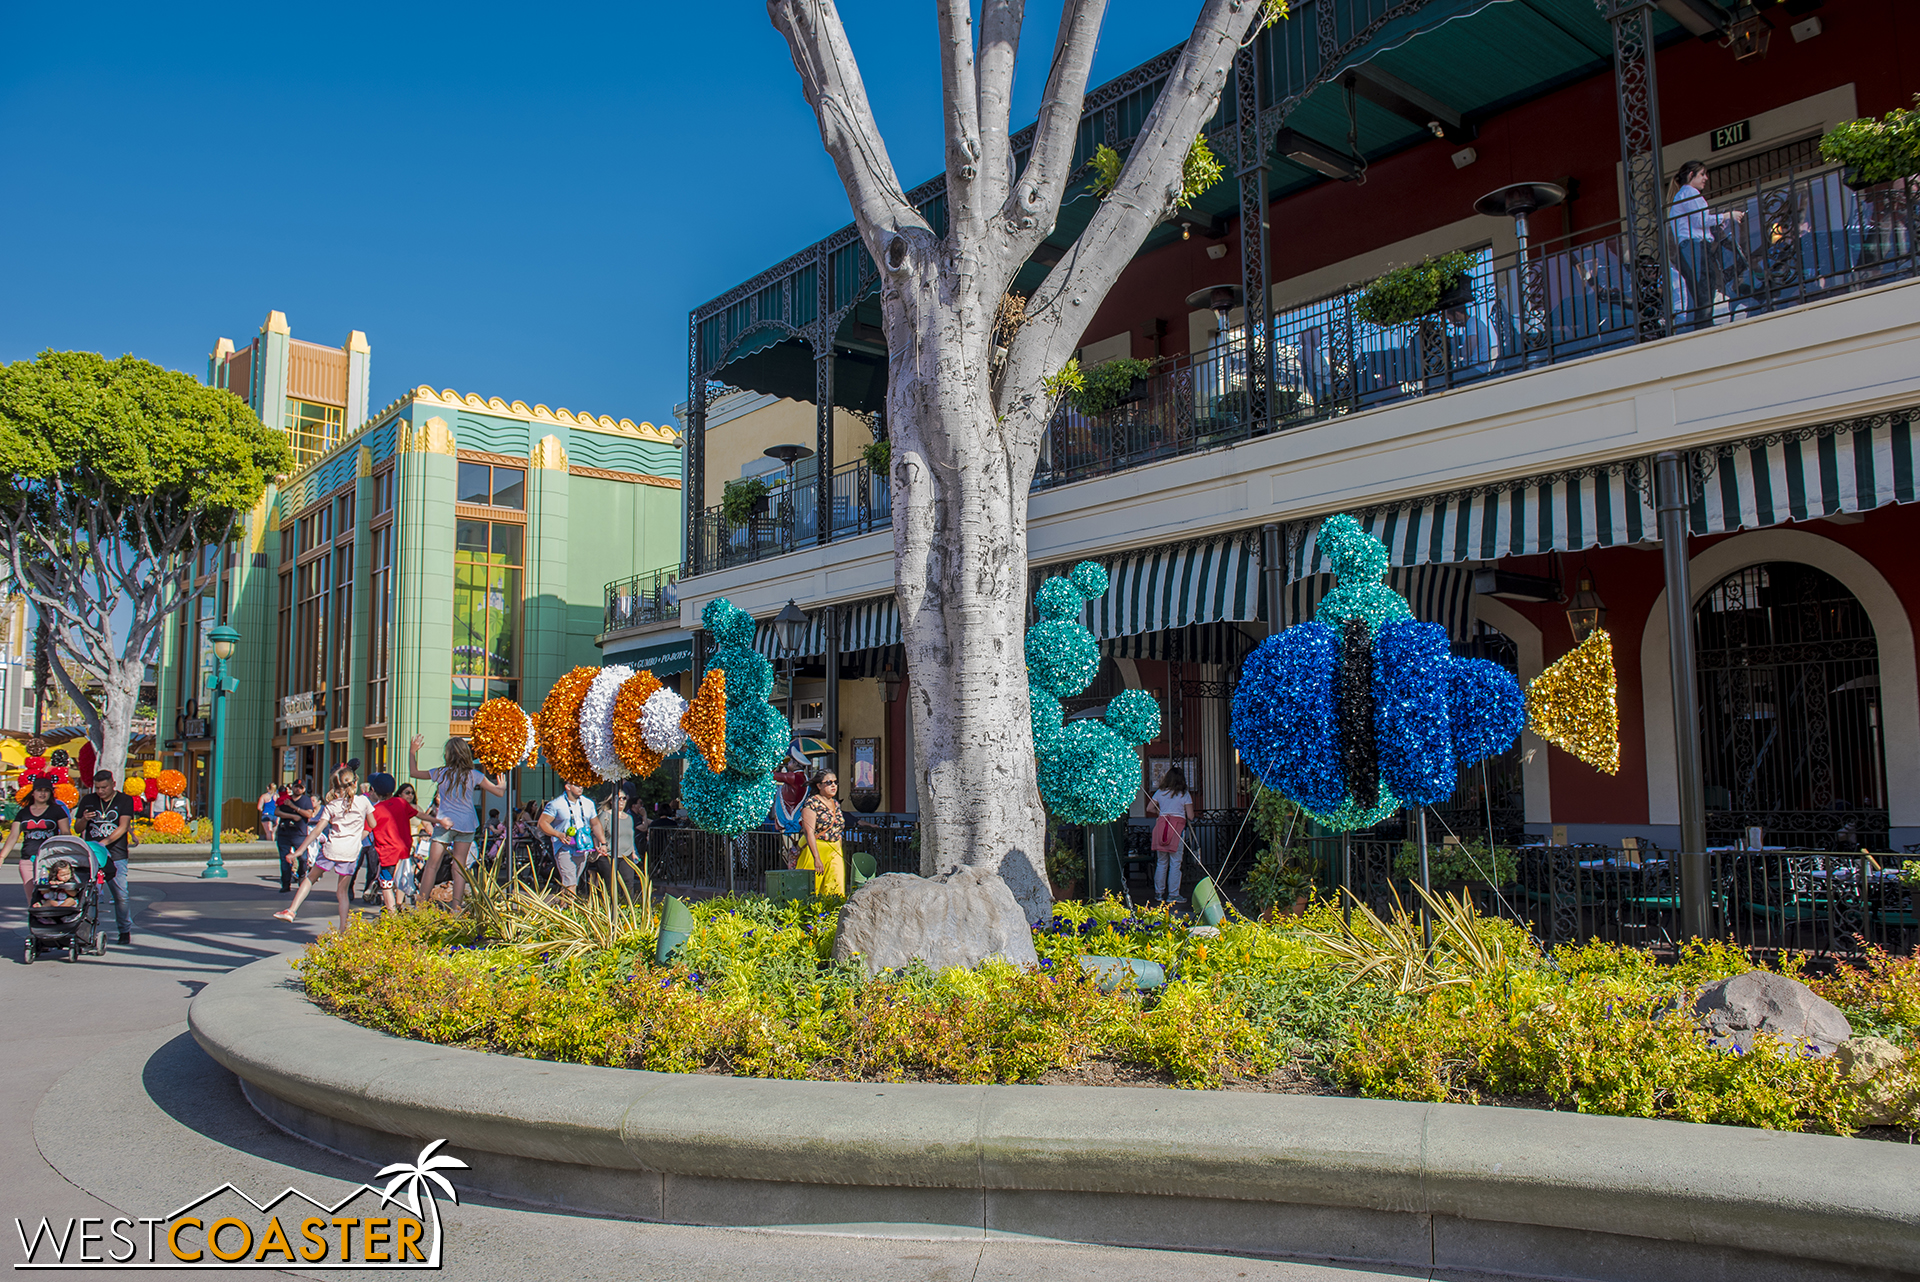 In Downtown Disney, they're accompanied by these tinsel-y Pixar figures.